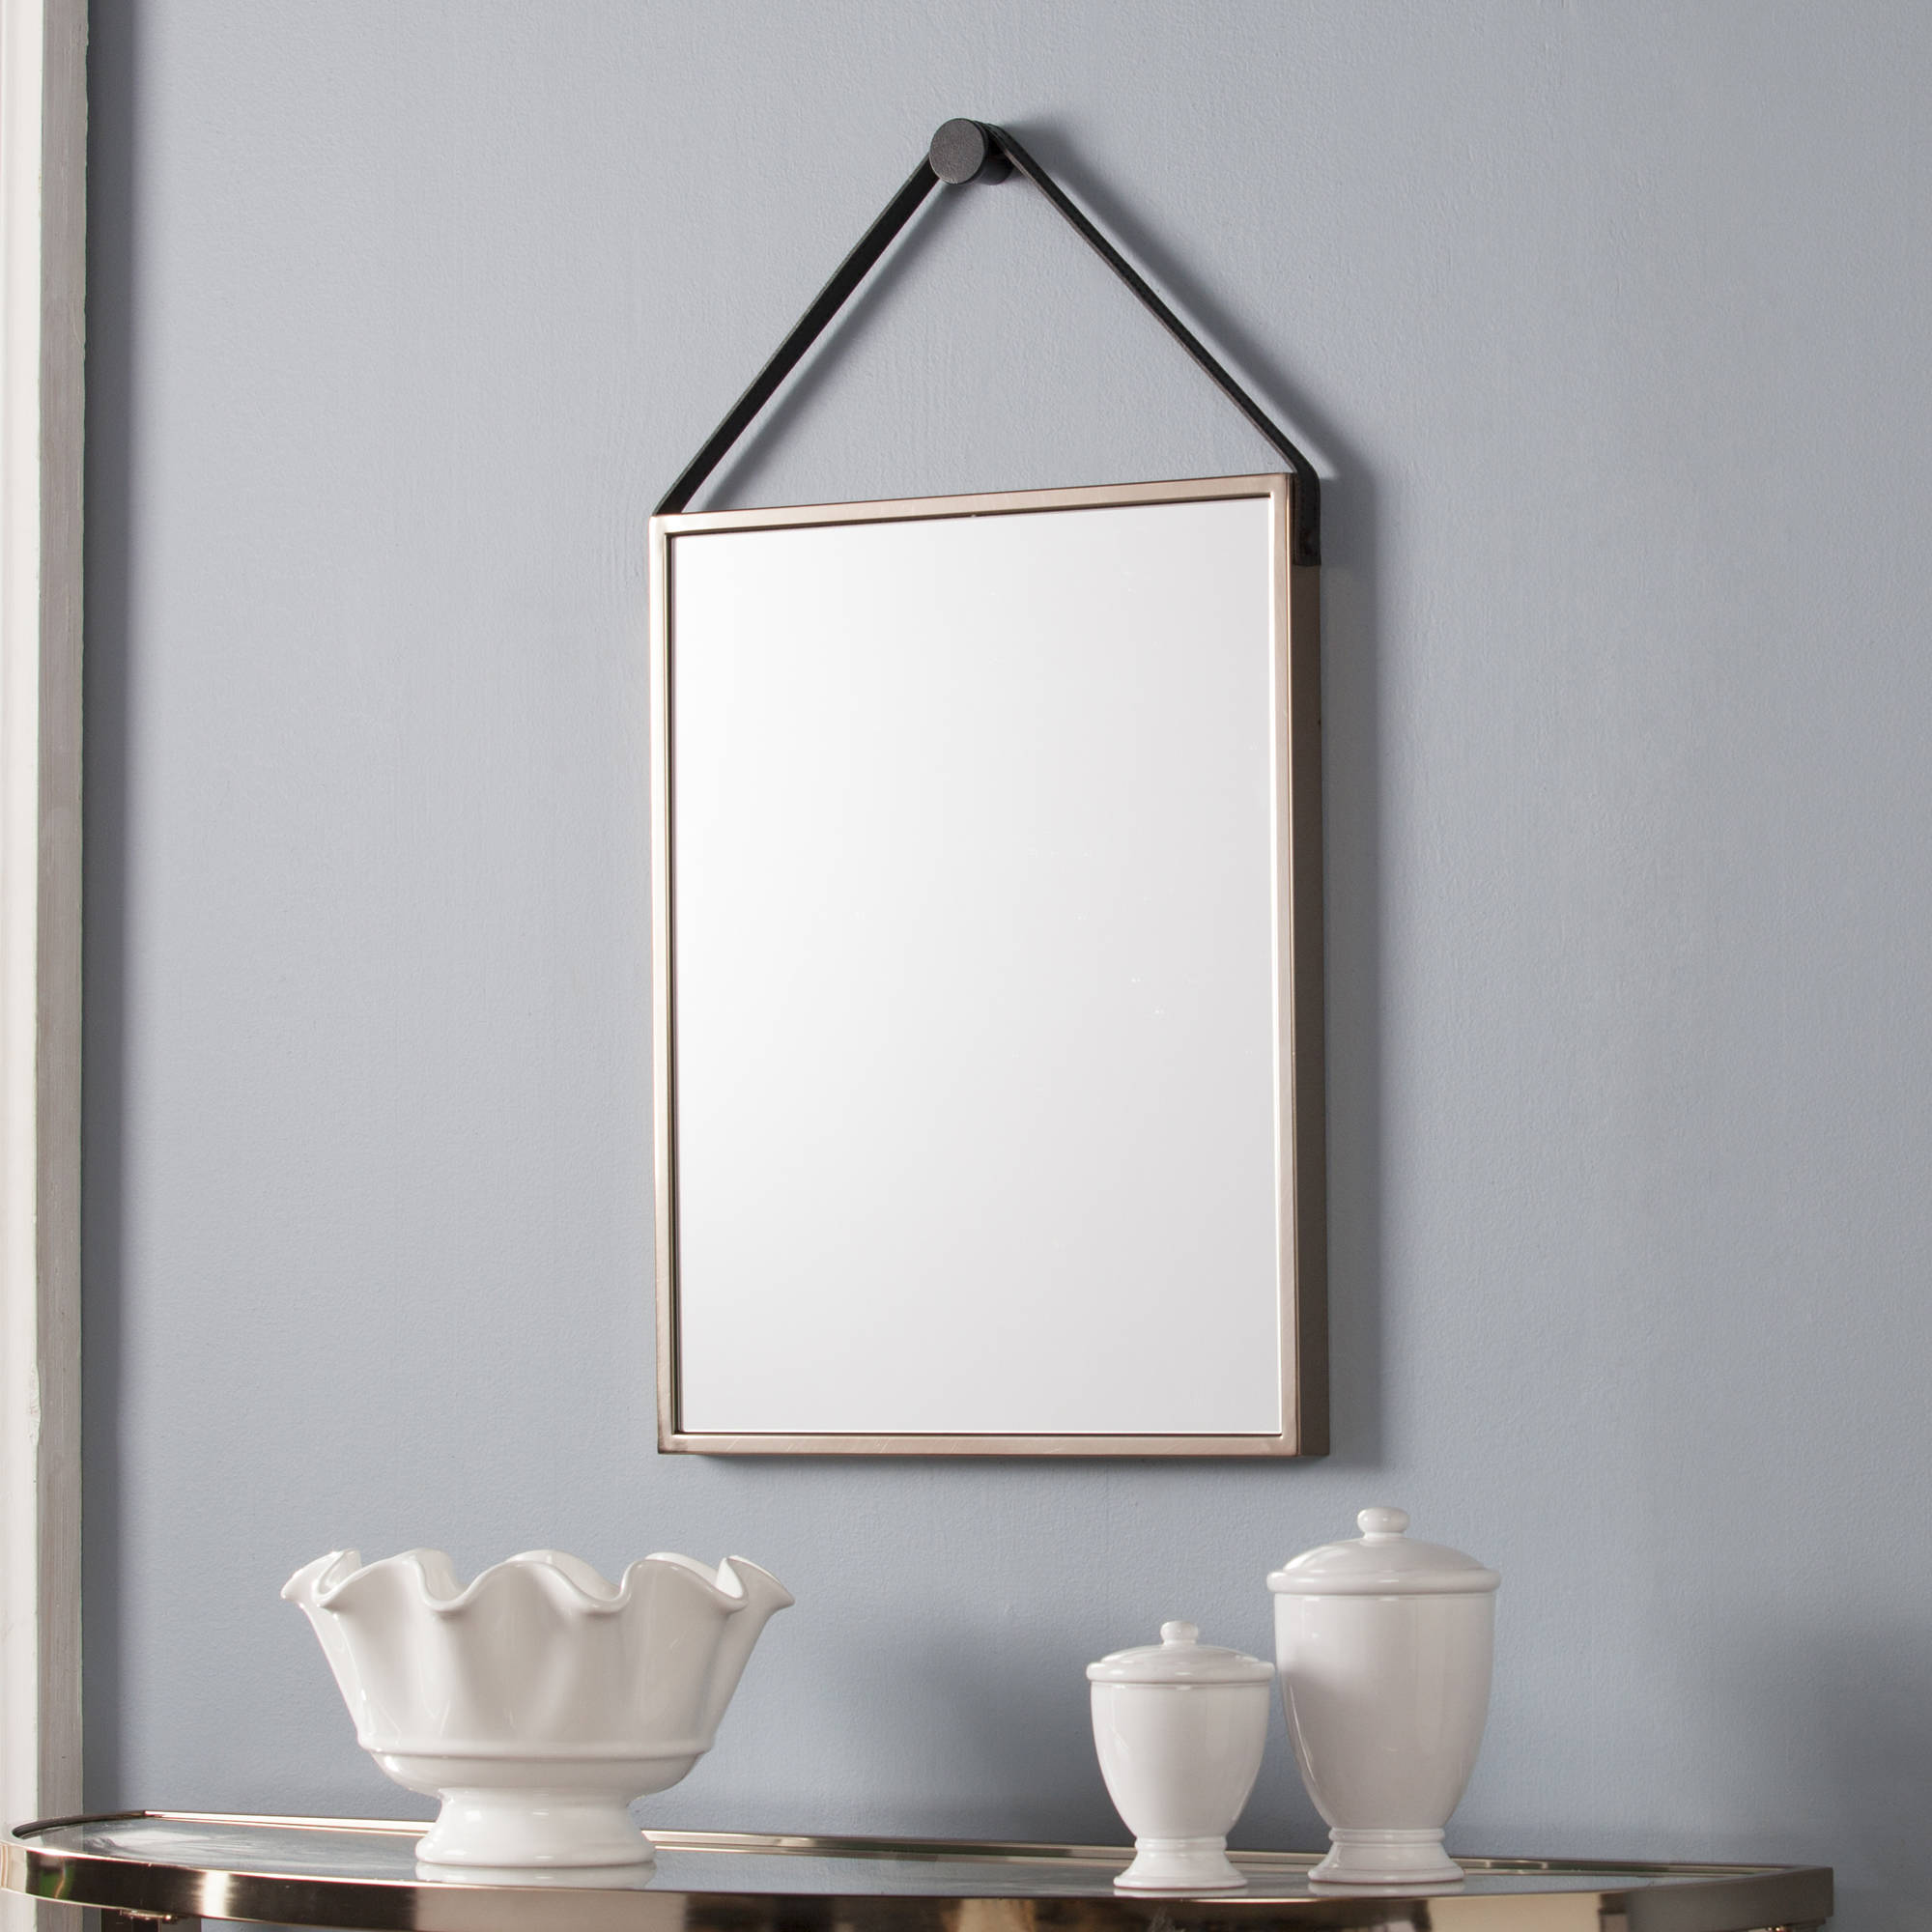 Southern Enterprises Leather Strap Rectangle Decorative Mirror, Champagne